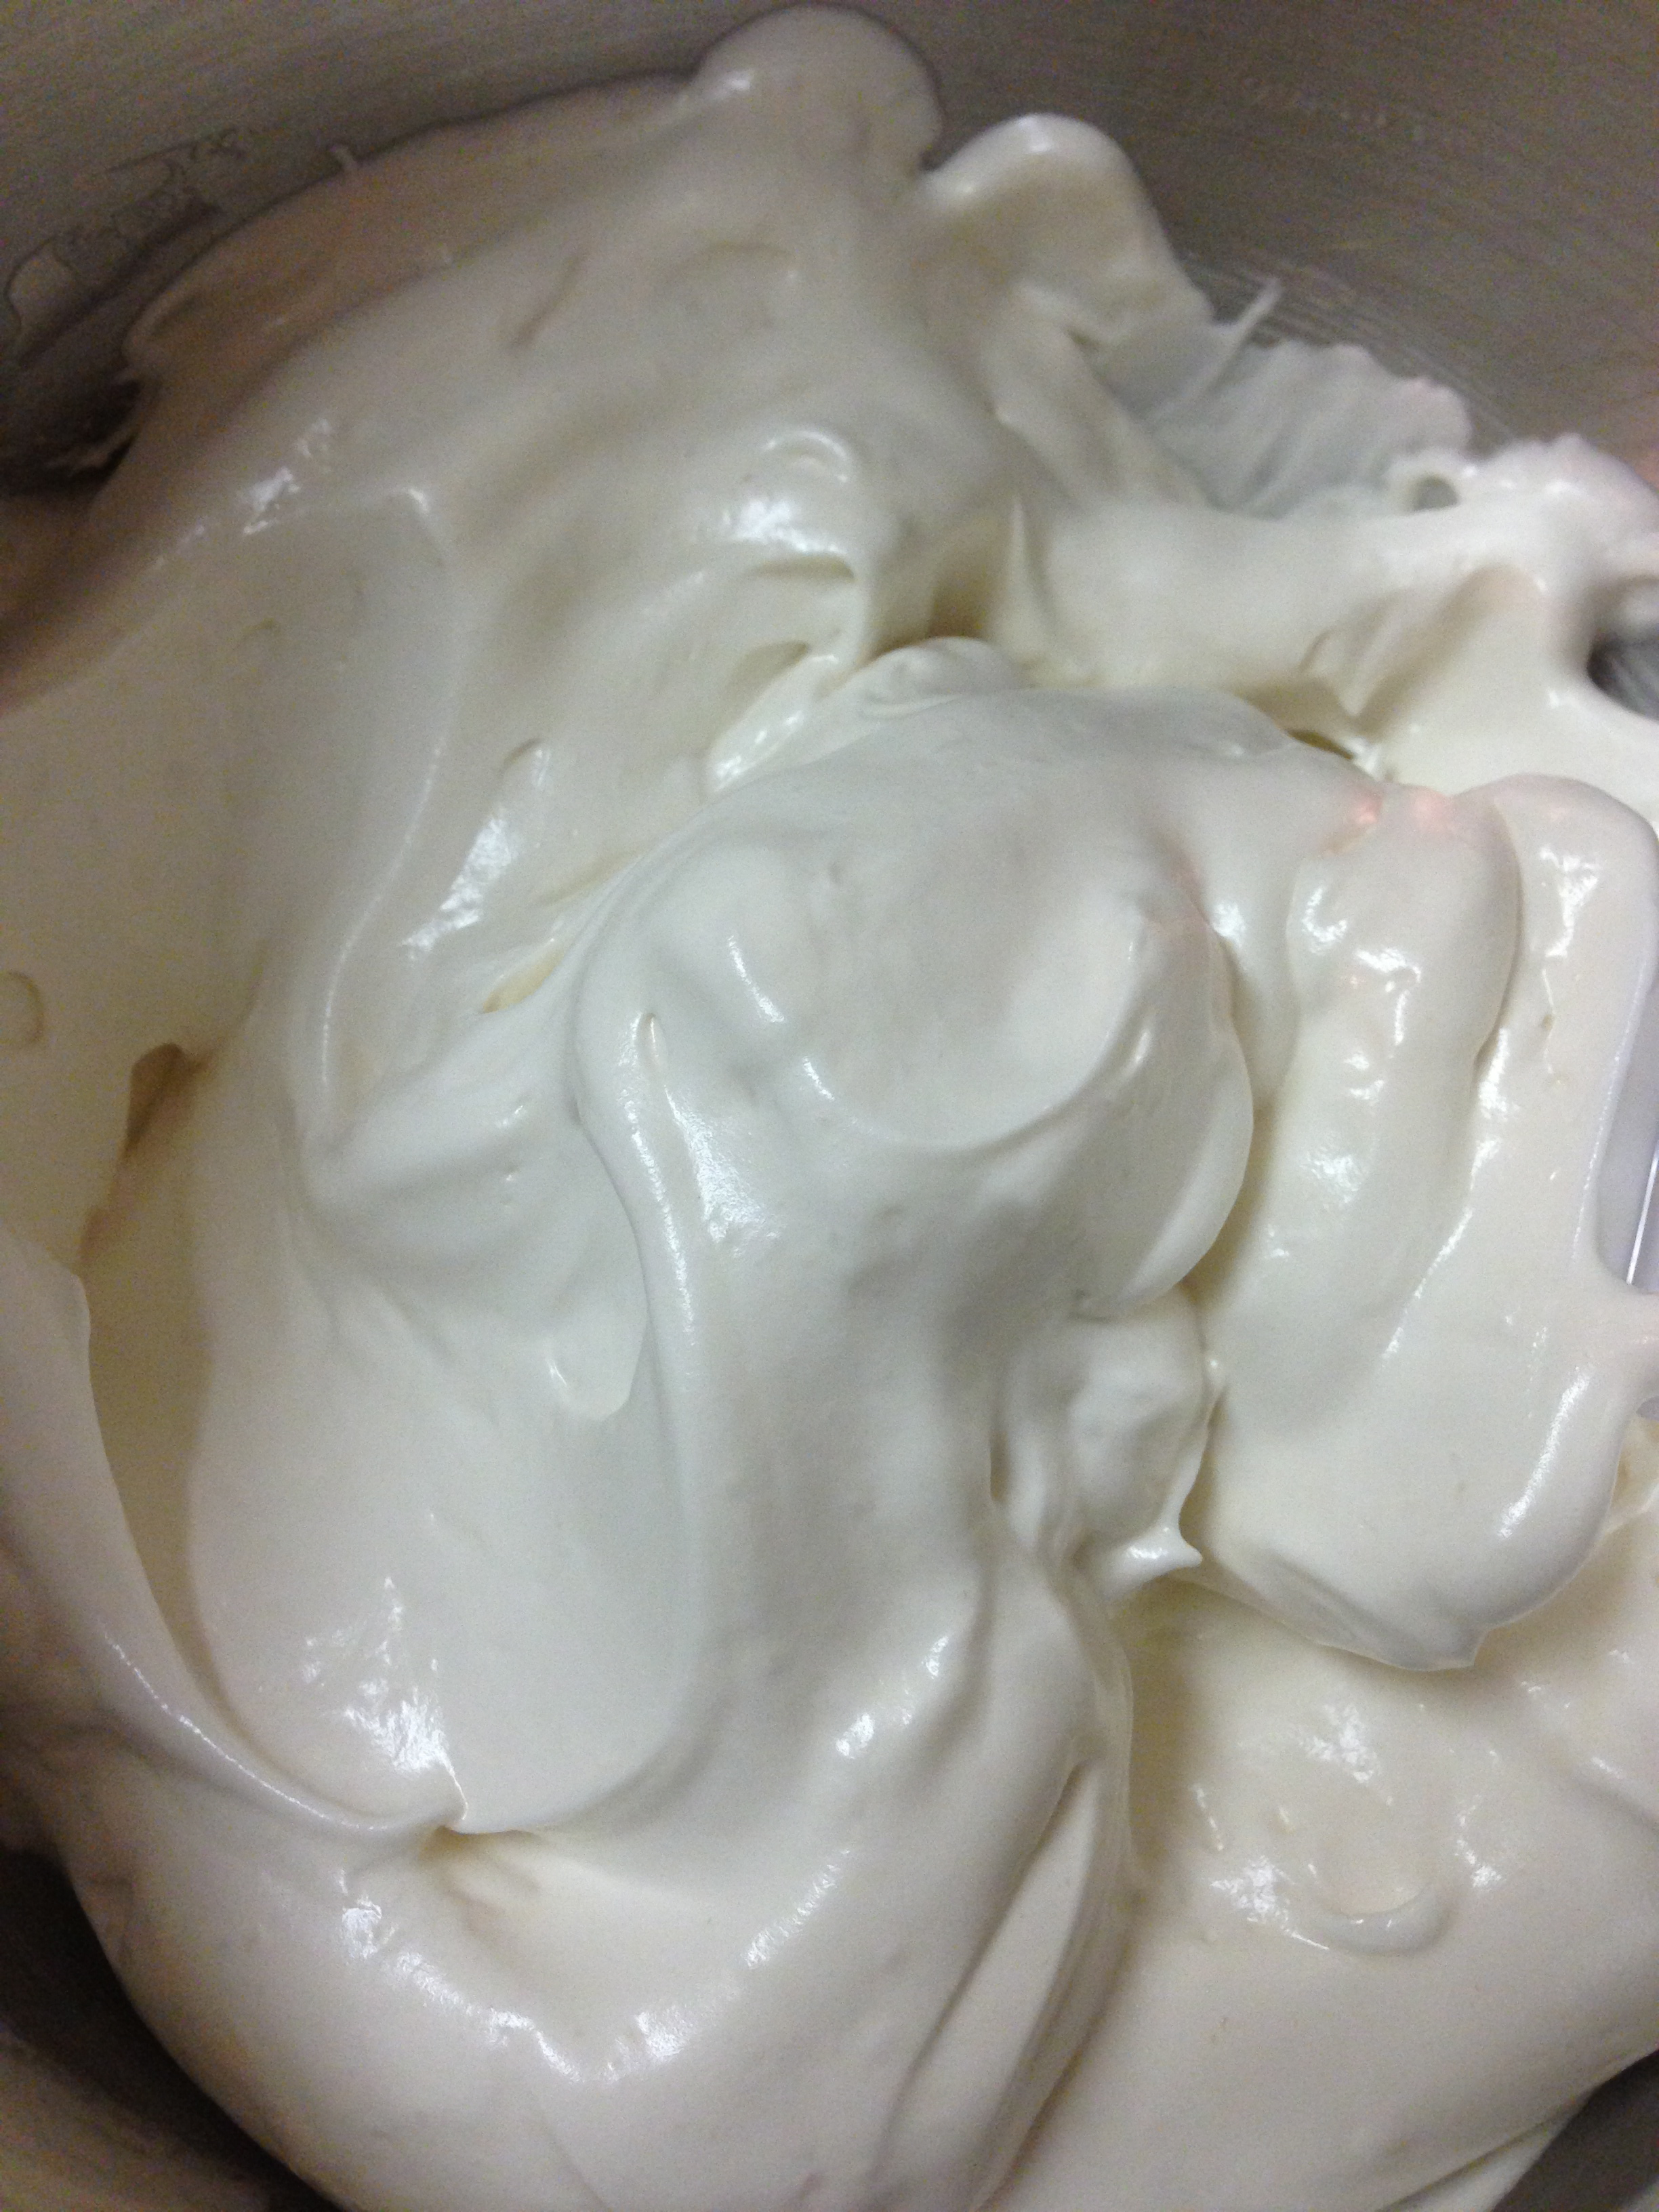 Homemade Marshmallow Fluff: Take 1 | Little Bit Sweet